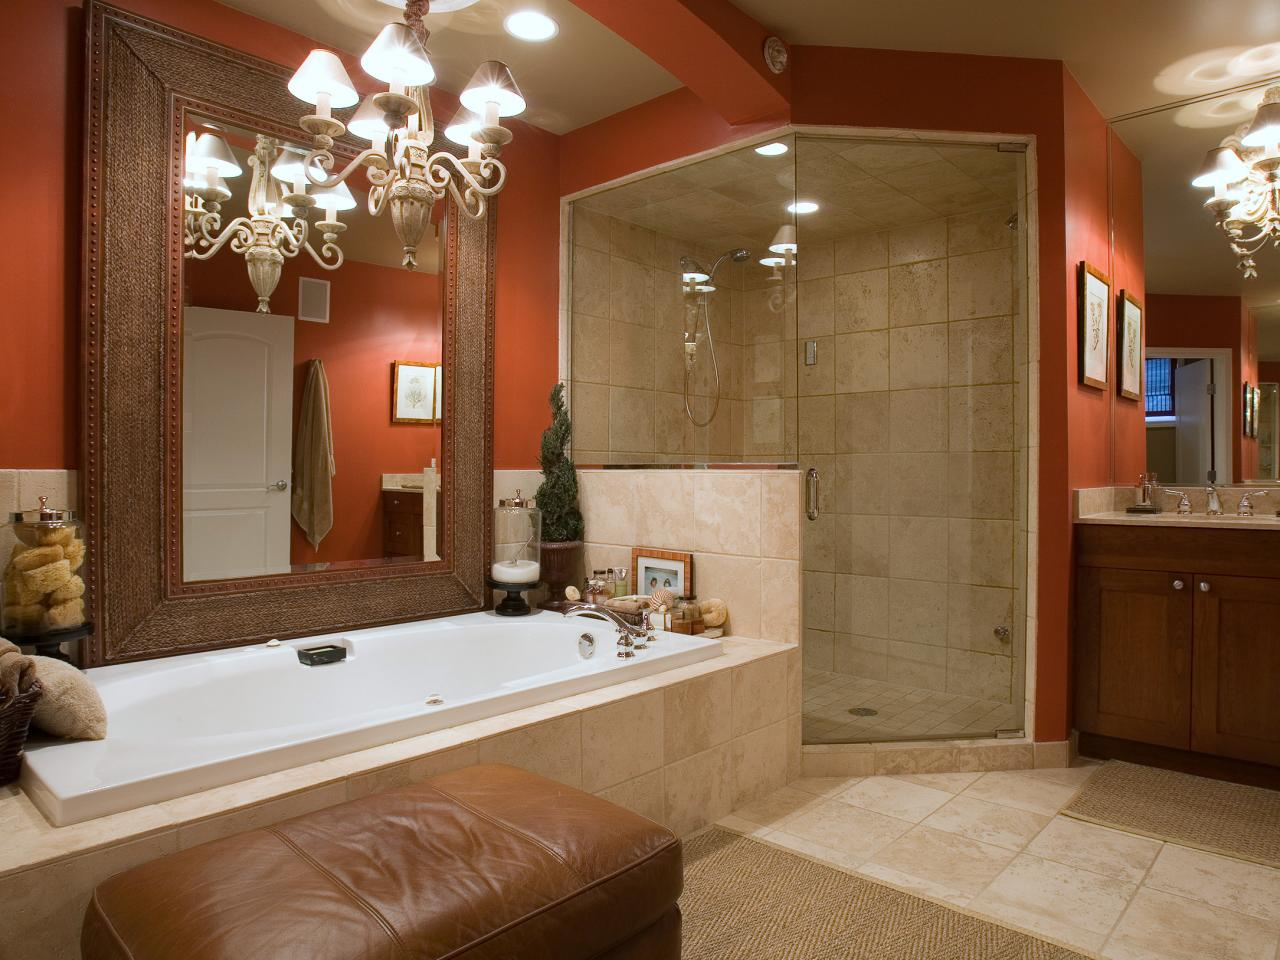 Interior Bathroom Colors Pictures some helpful ideas in choosing the bathroom colour schemes for install classic chandeliers to decorate beige color near oak vanity and closed shower room